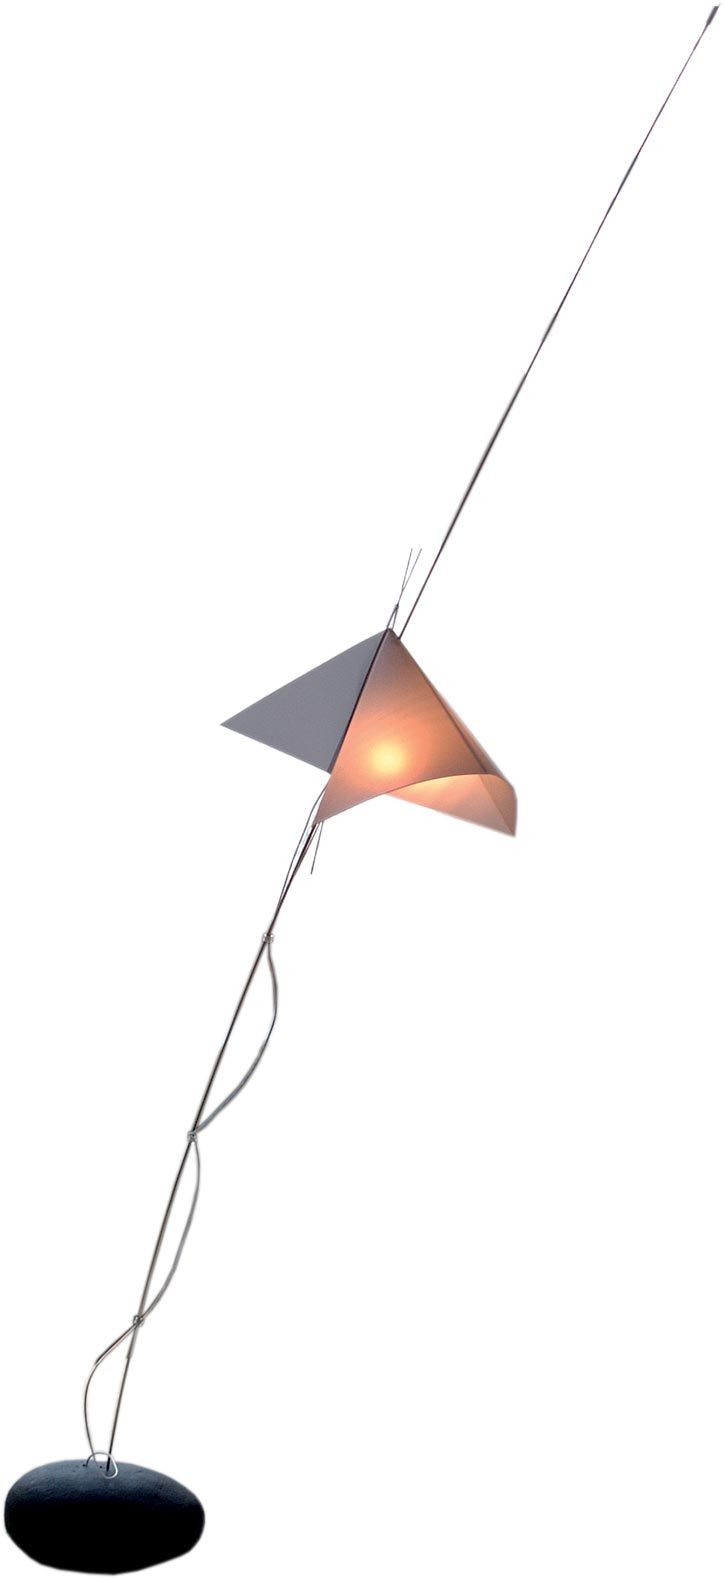 Origami kite desk lamp. Céline Wright.